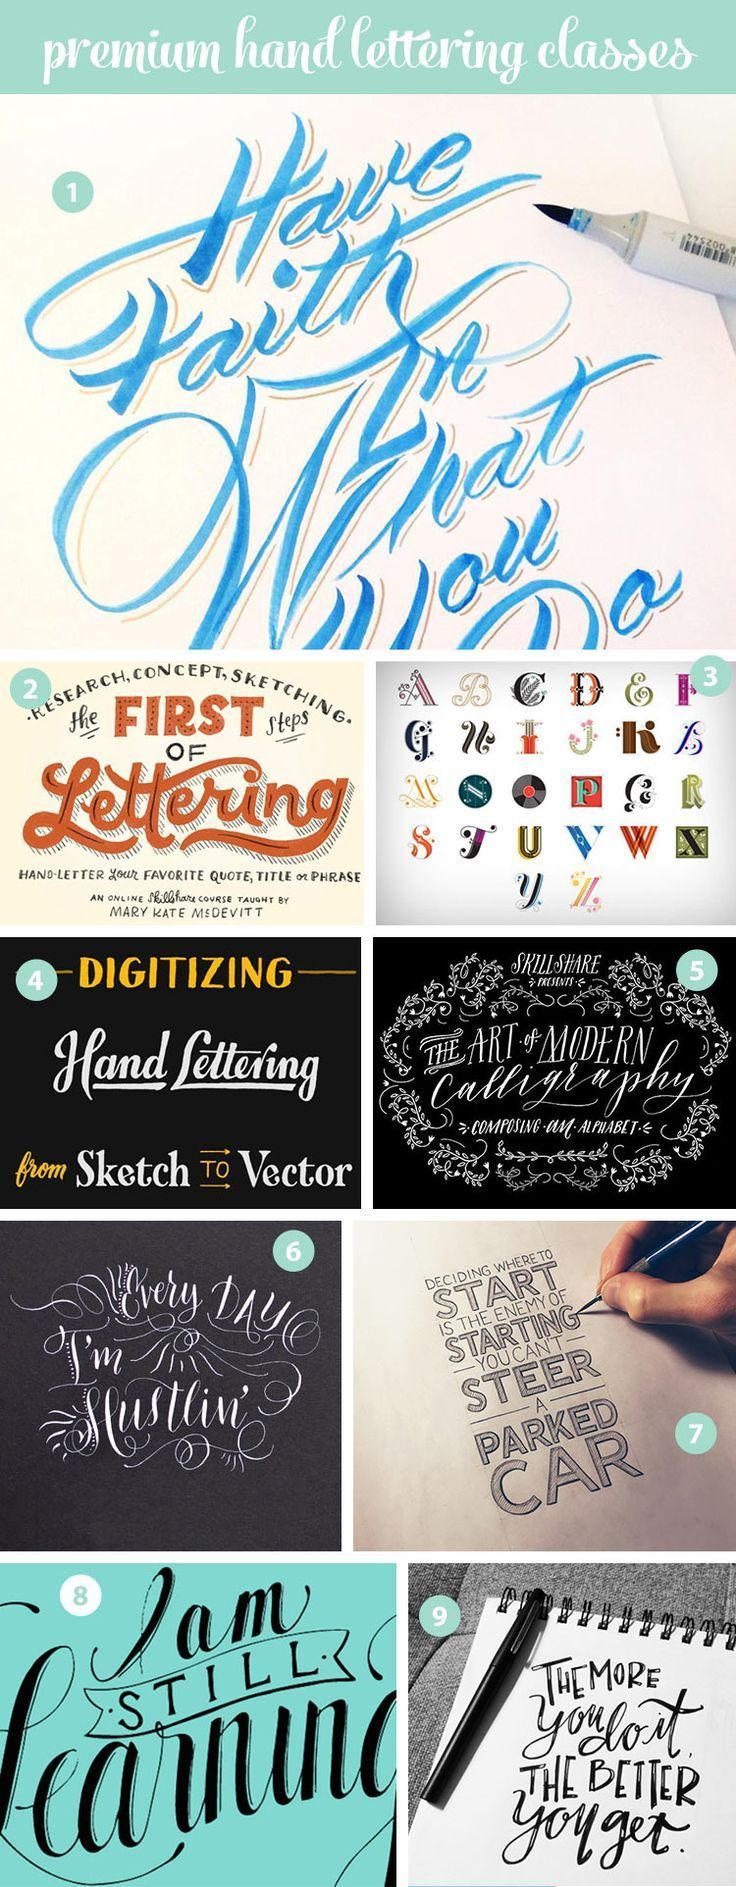 best fontssvgs images on pinterest free printables interior